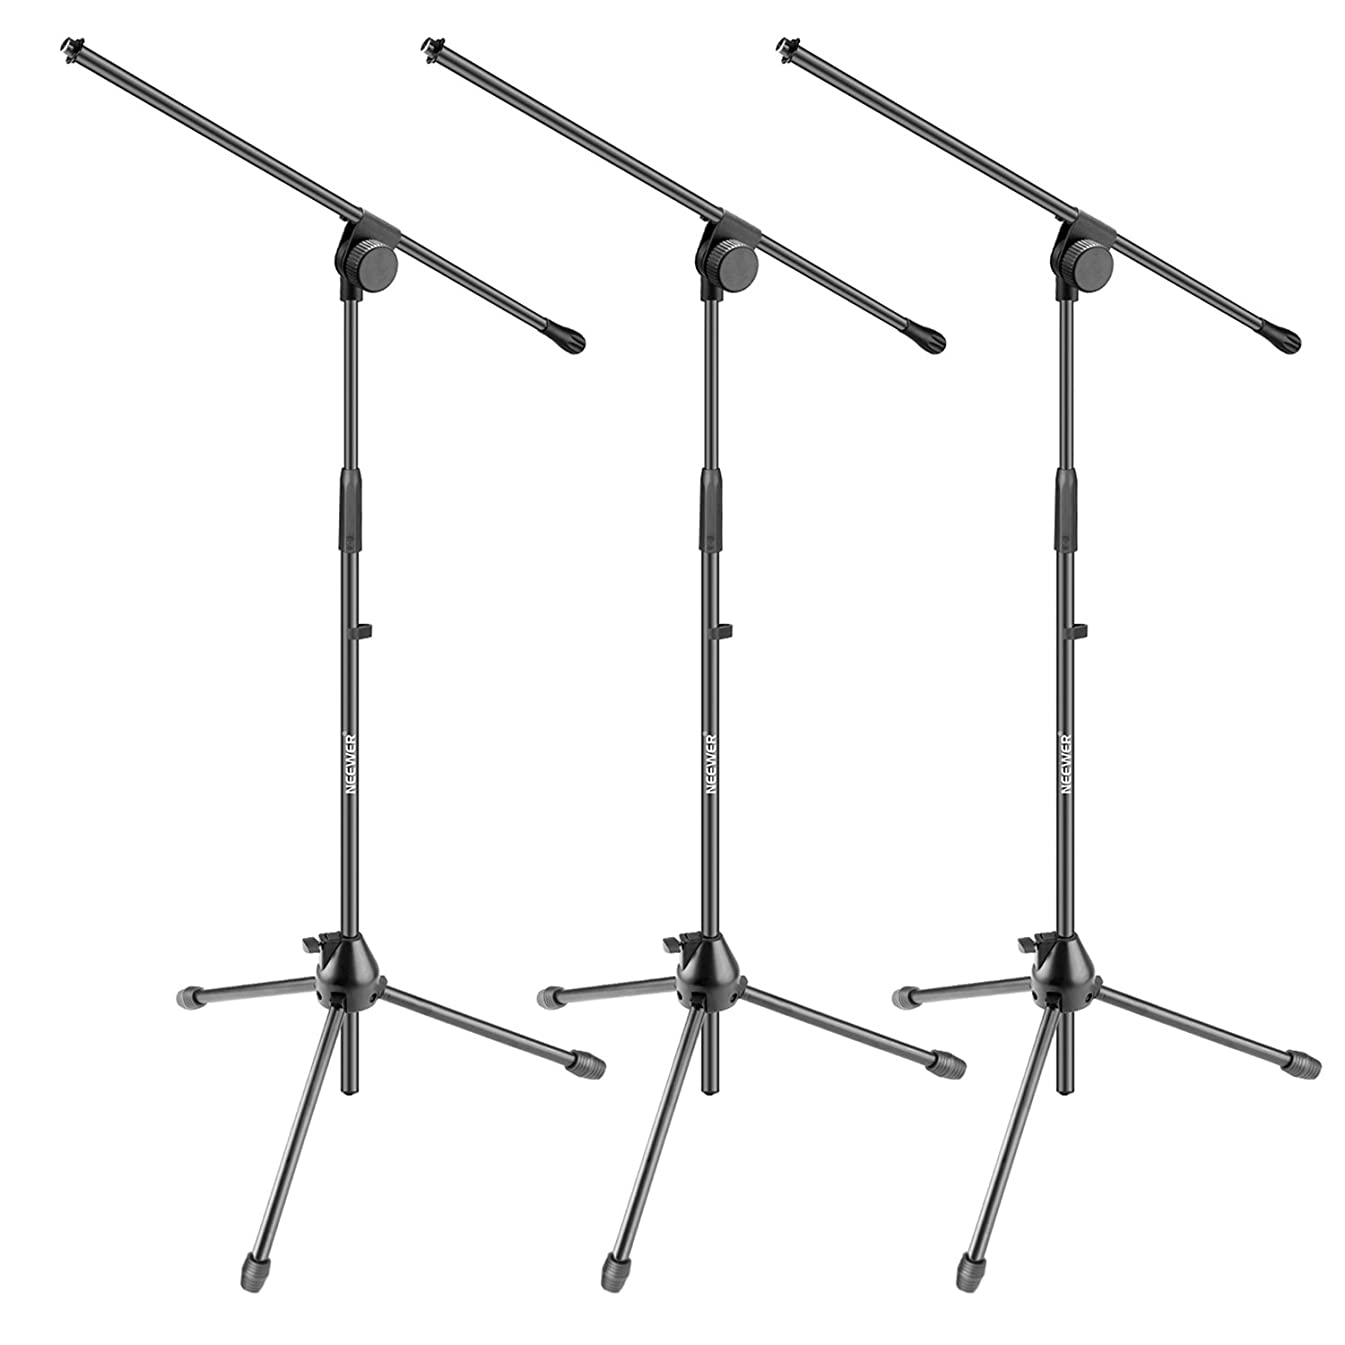 Neewer 3 Pieces Tripod Boom Floor Microphone Stands for Stage or Studio Use- Aluminum Alloy, Foldable and Rotatable, Adjustable Height Maximum 37.4 inches/95 centimeters (NW006-1)